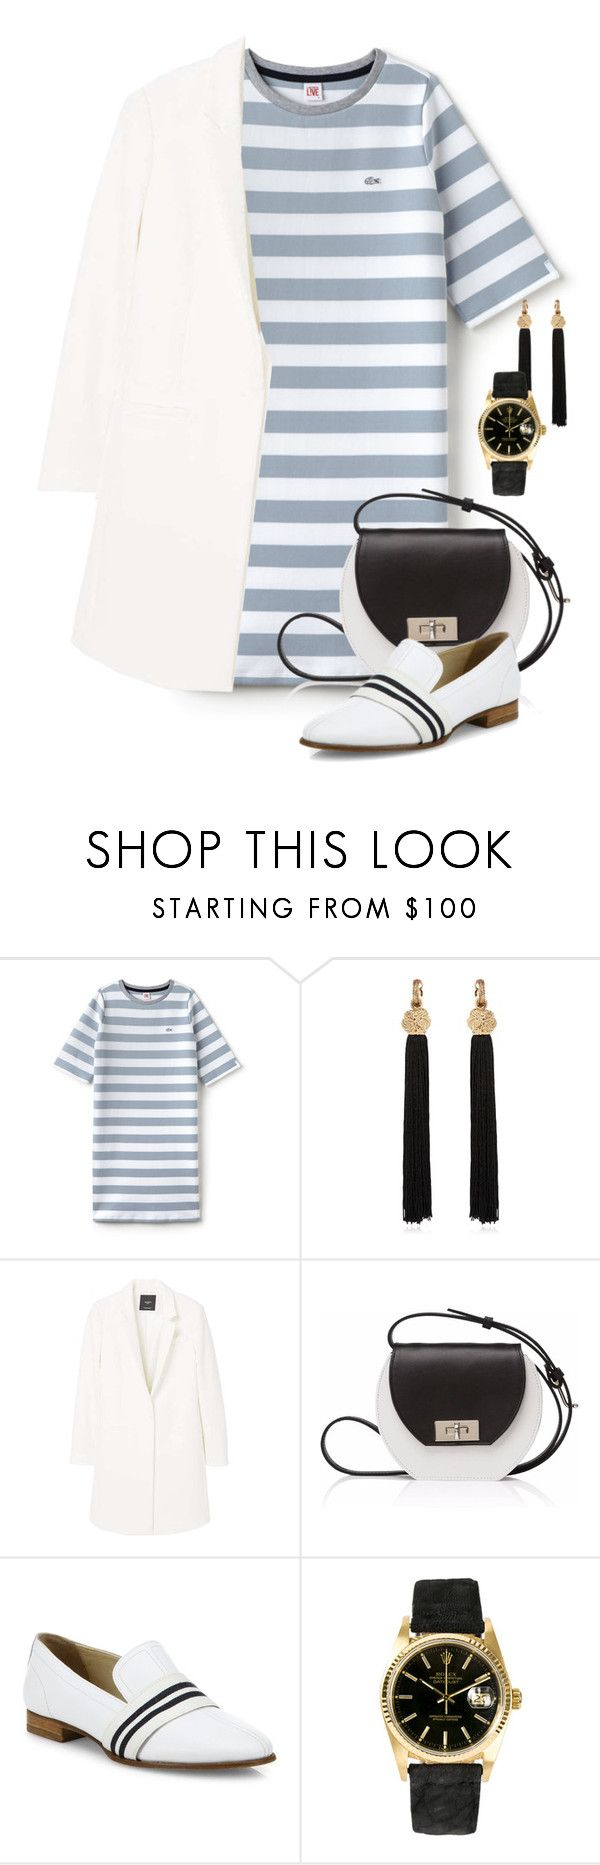 """""""Another favourite stripped dress"""" by no-where-girl ❤ liked on Polyvore featuring Lacoste L!VE, Yves Saint Laurent, MANGO, Joanna Maxham, rag & bone, Rolex and WearIt"""